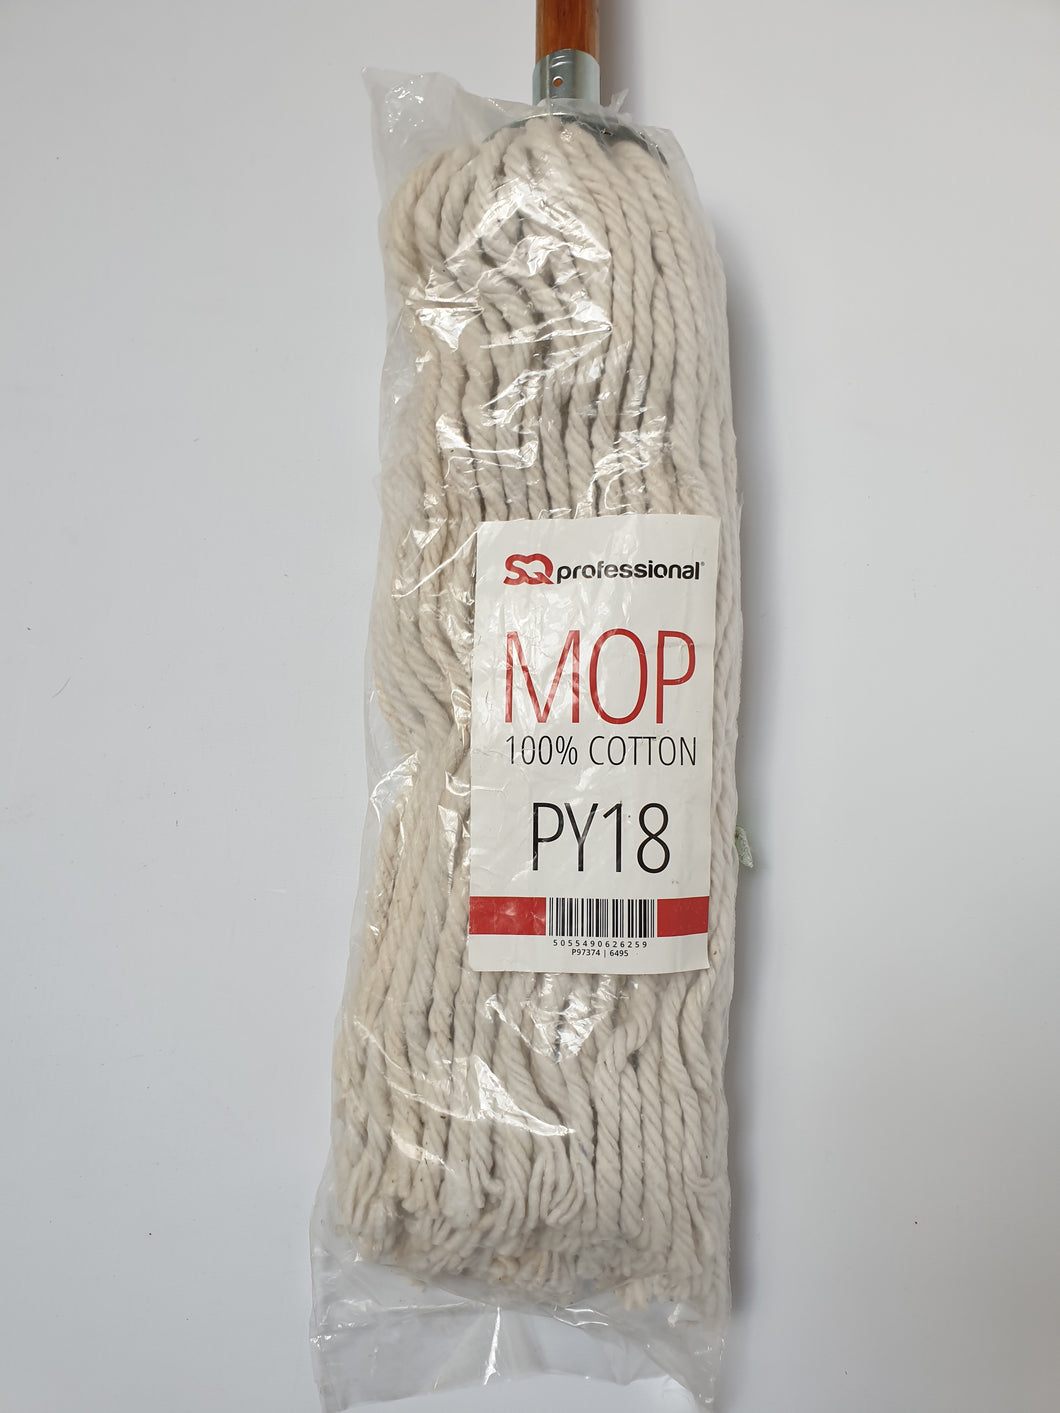 PY18 Cotton Mop